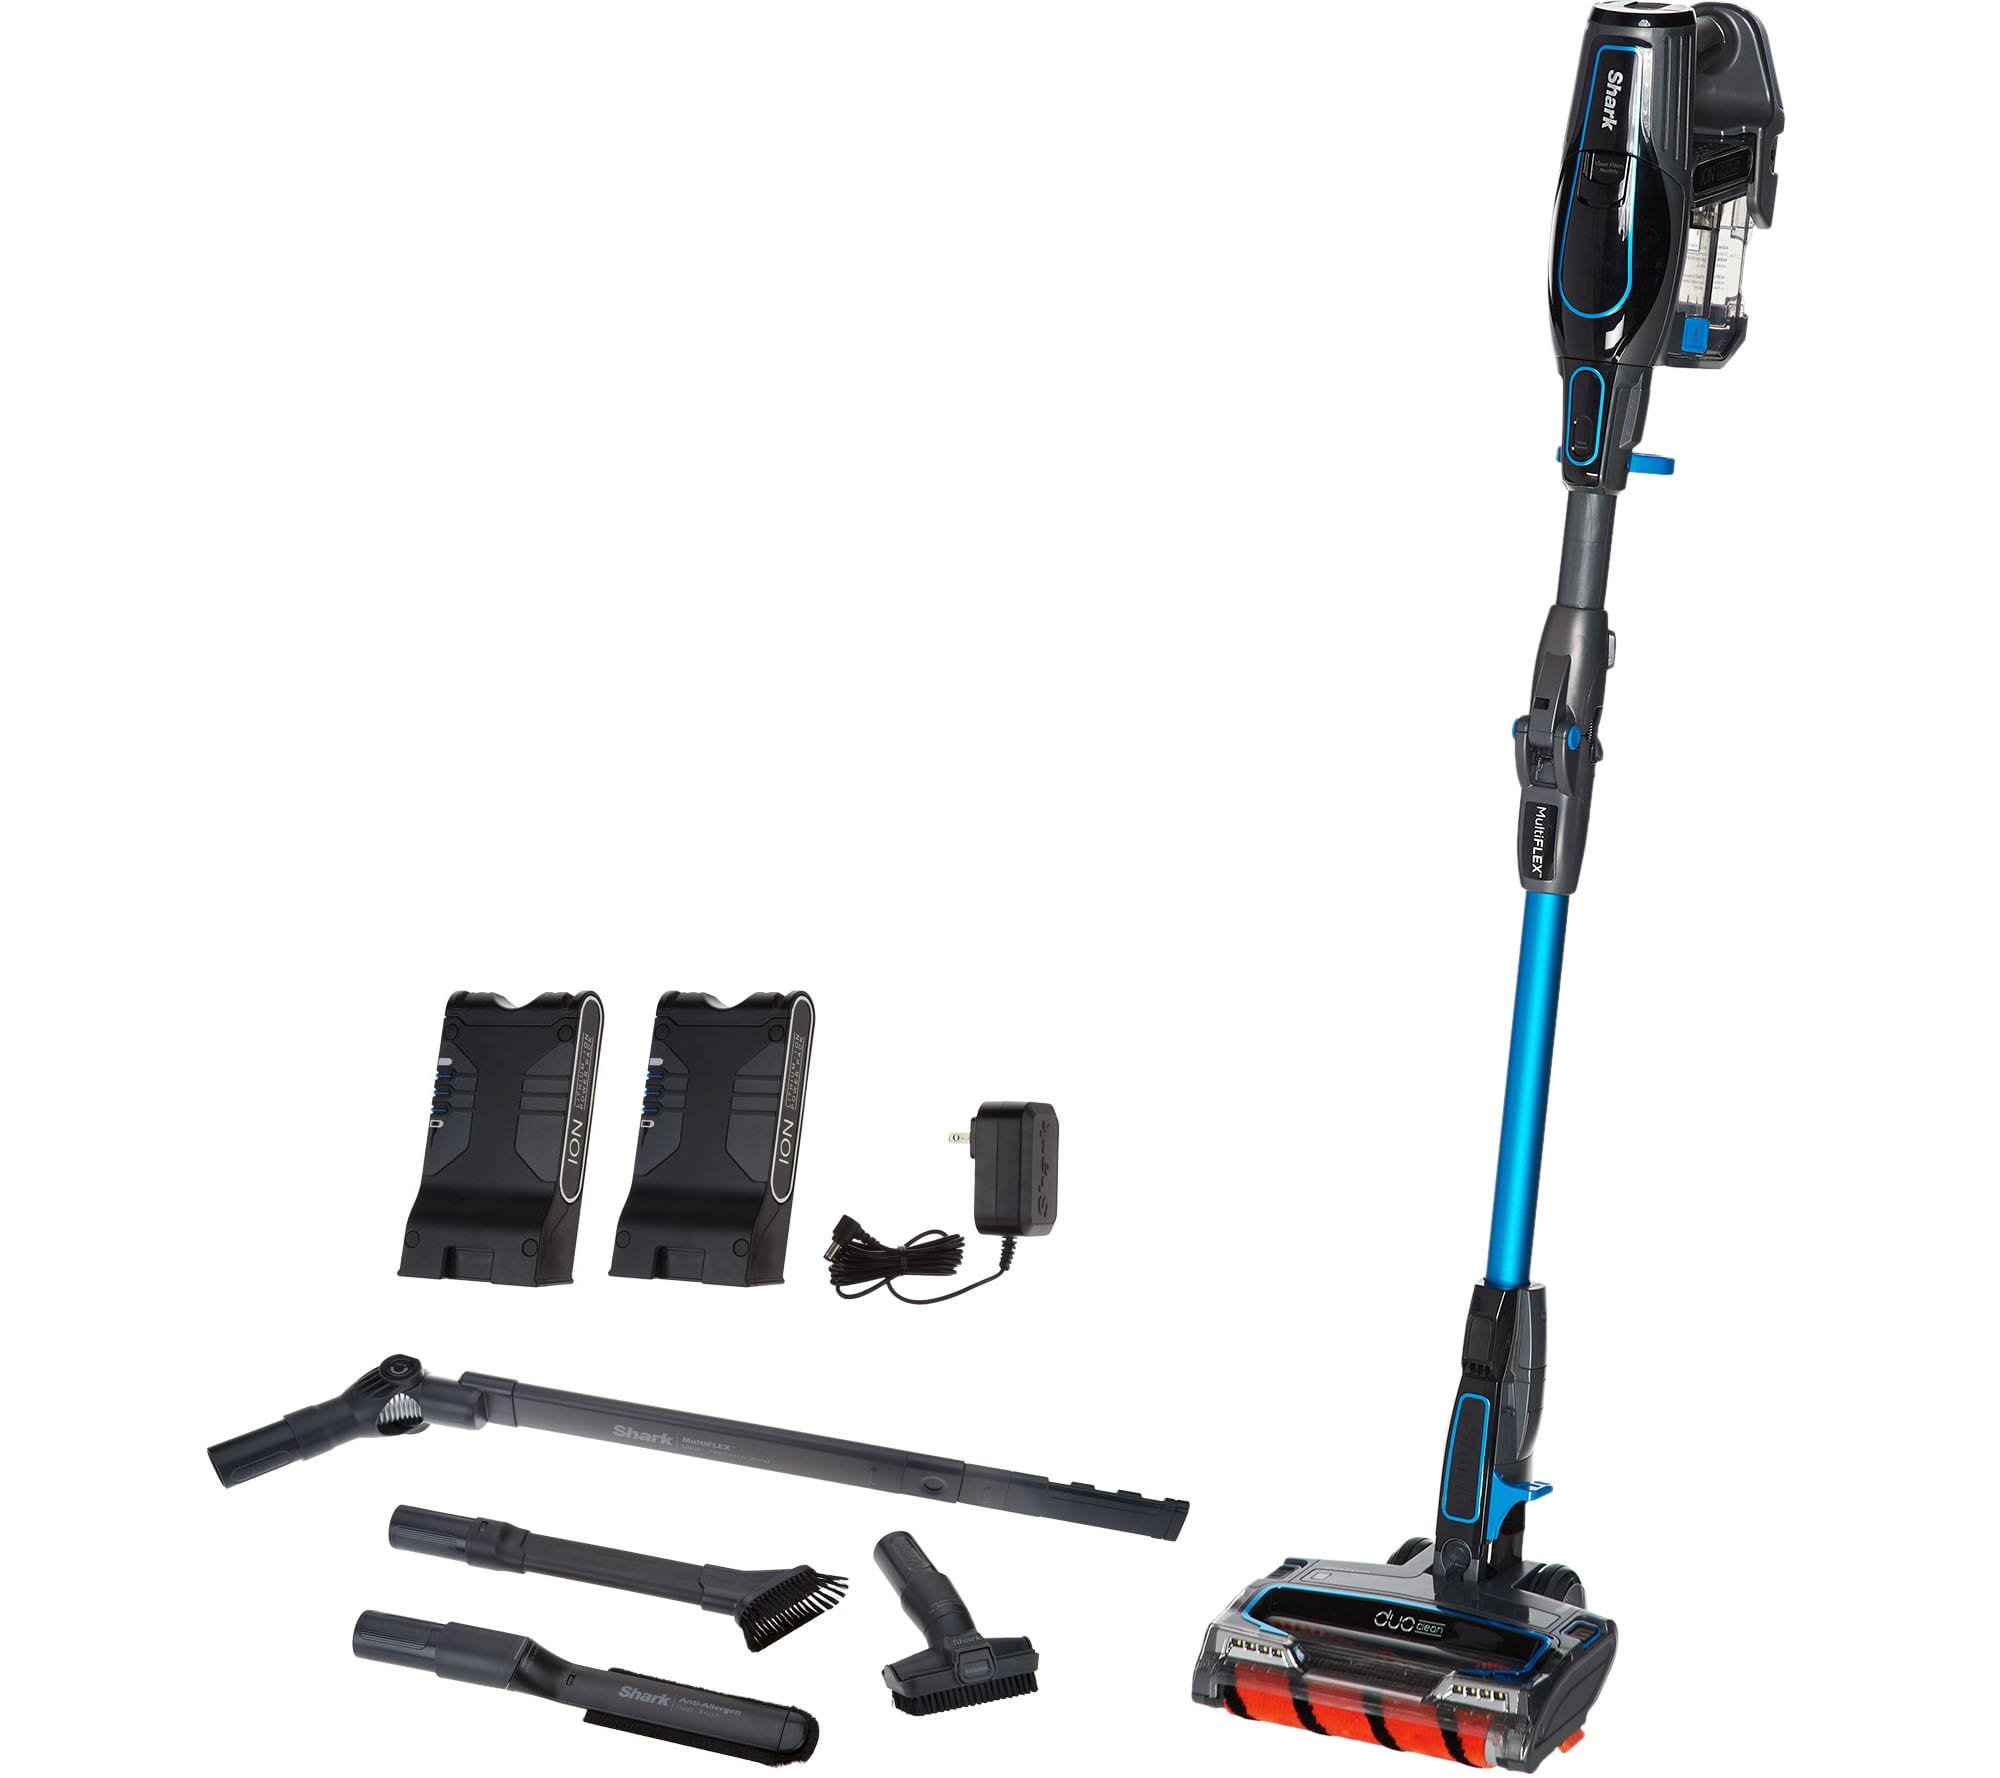 Shark IONFlex DuoClean 2X Cordless Vacuum w/ Accessories - Cordless Dyson V8 Competitor $270